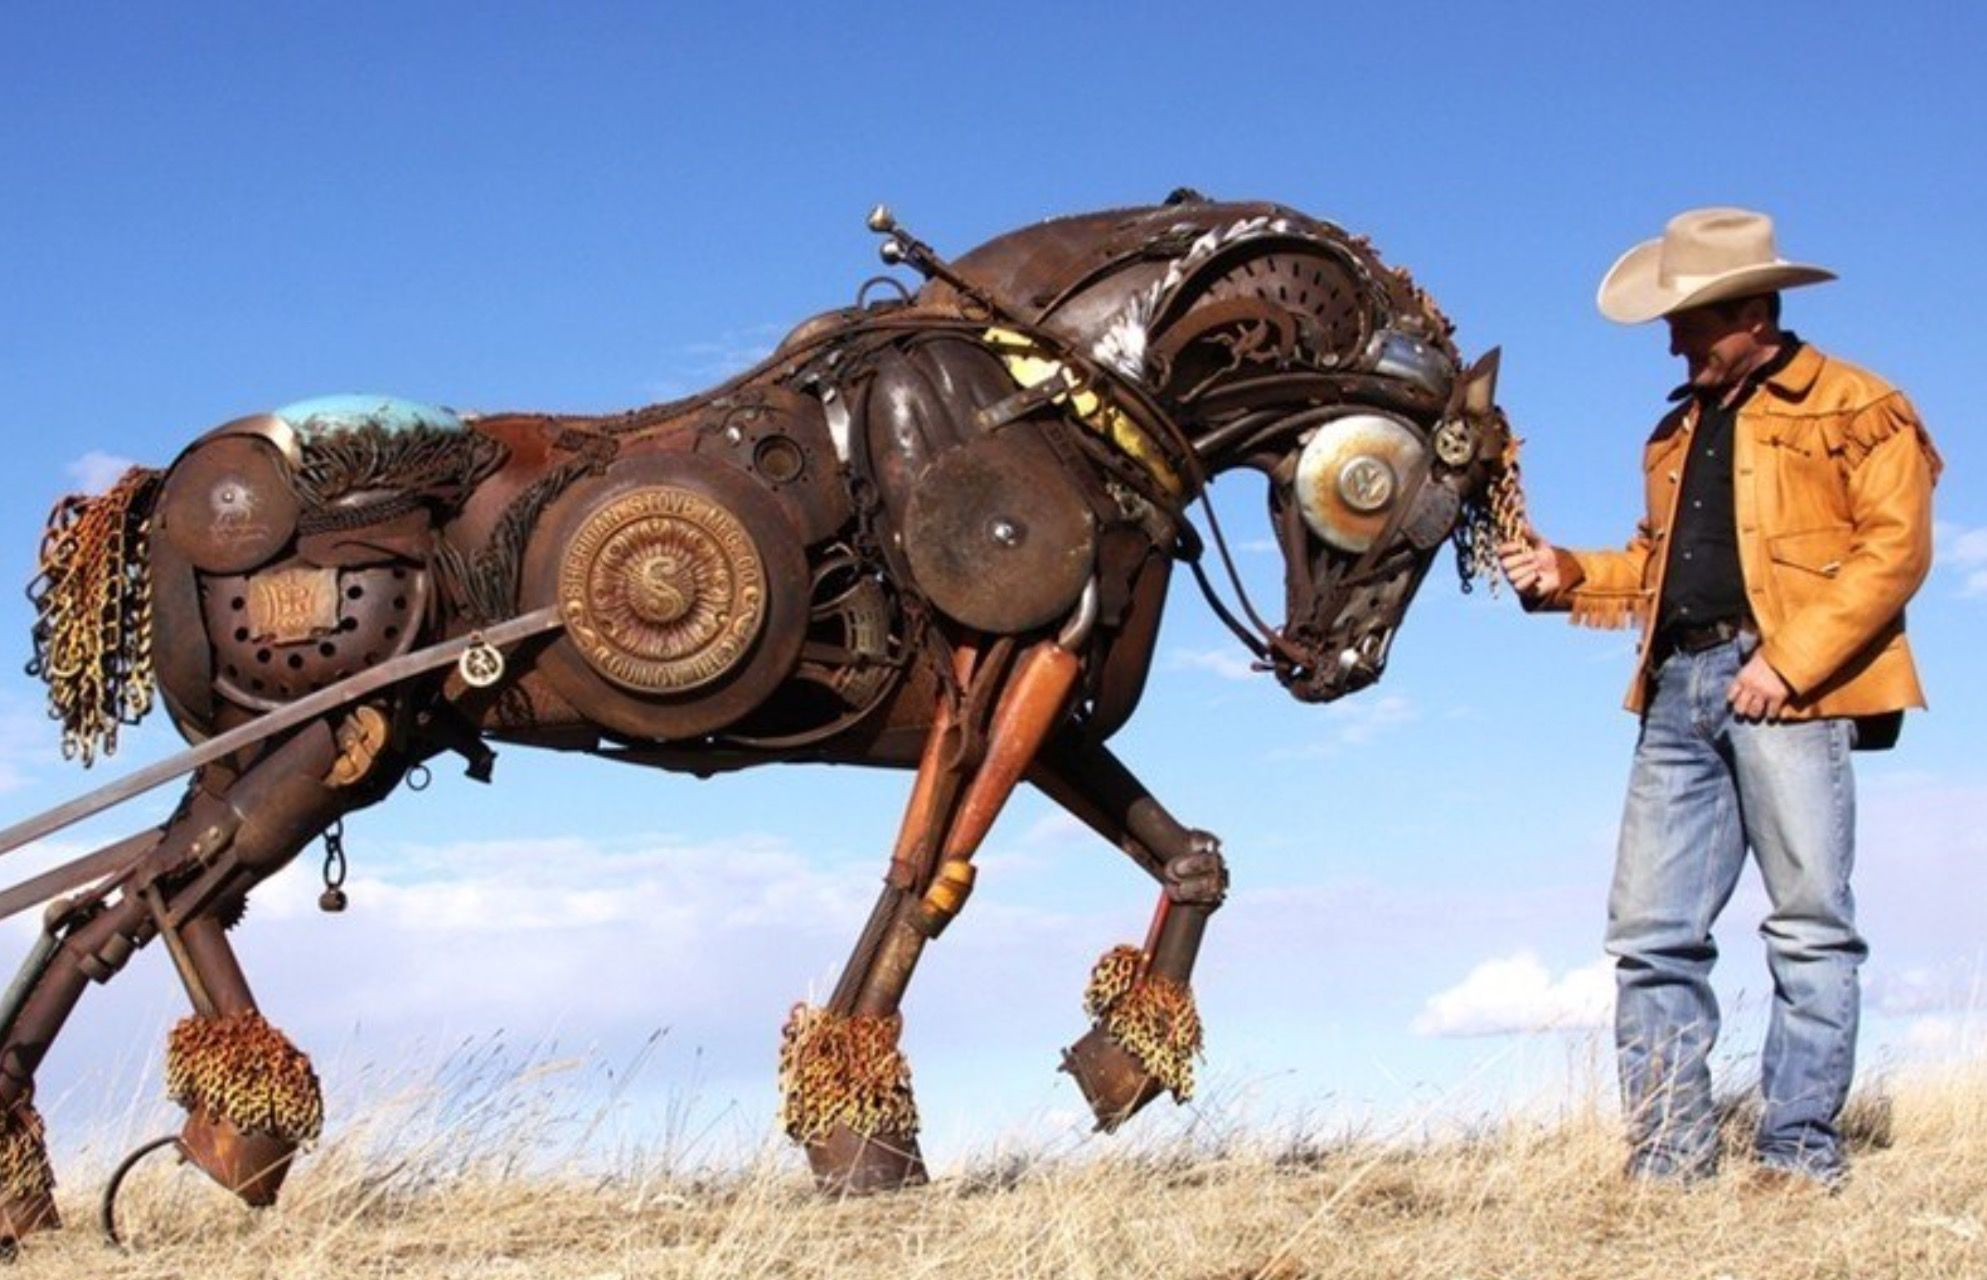 Pin By Gene Leachman On Artsie Pinterest - Artist creates incredible sculptures welding together old farming equipment